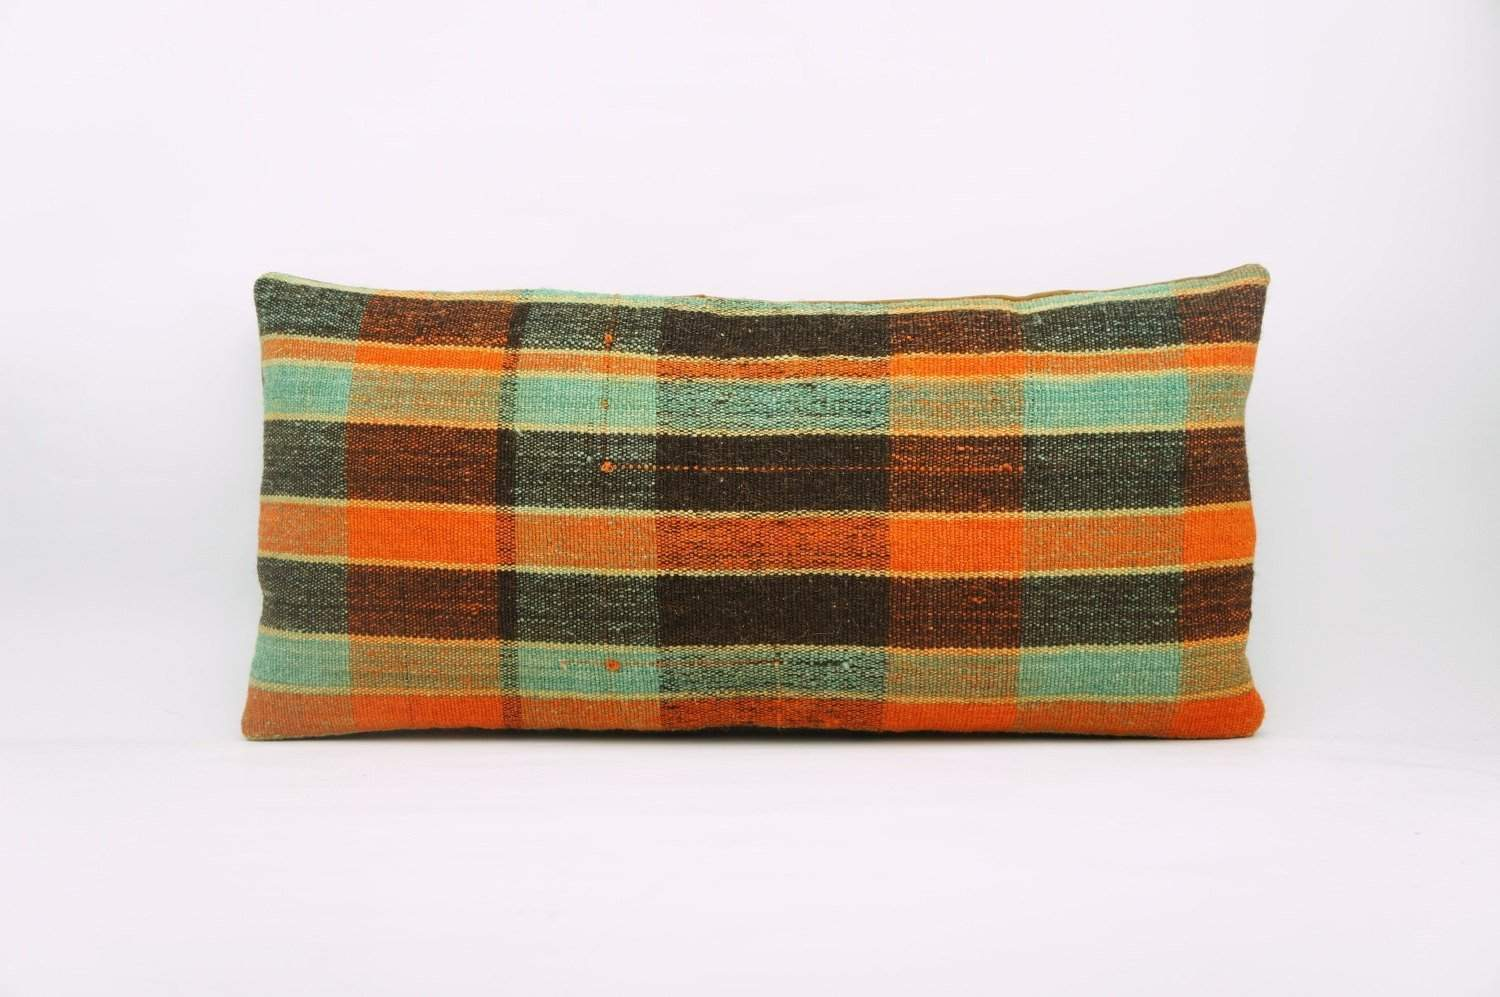 12x24 Vintage Hand Woven Kilim Pillow Lumbar Bohemian pillow case, 971